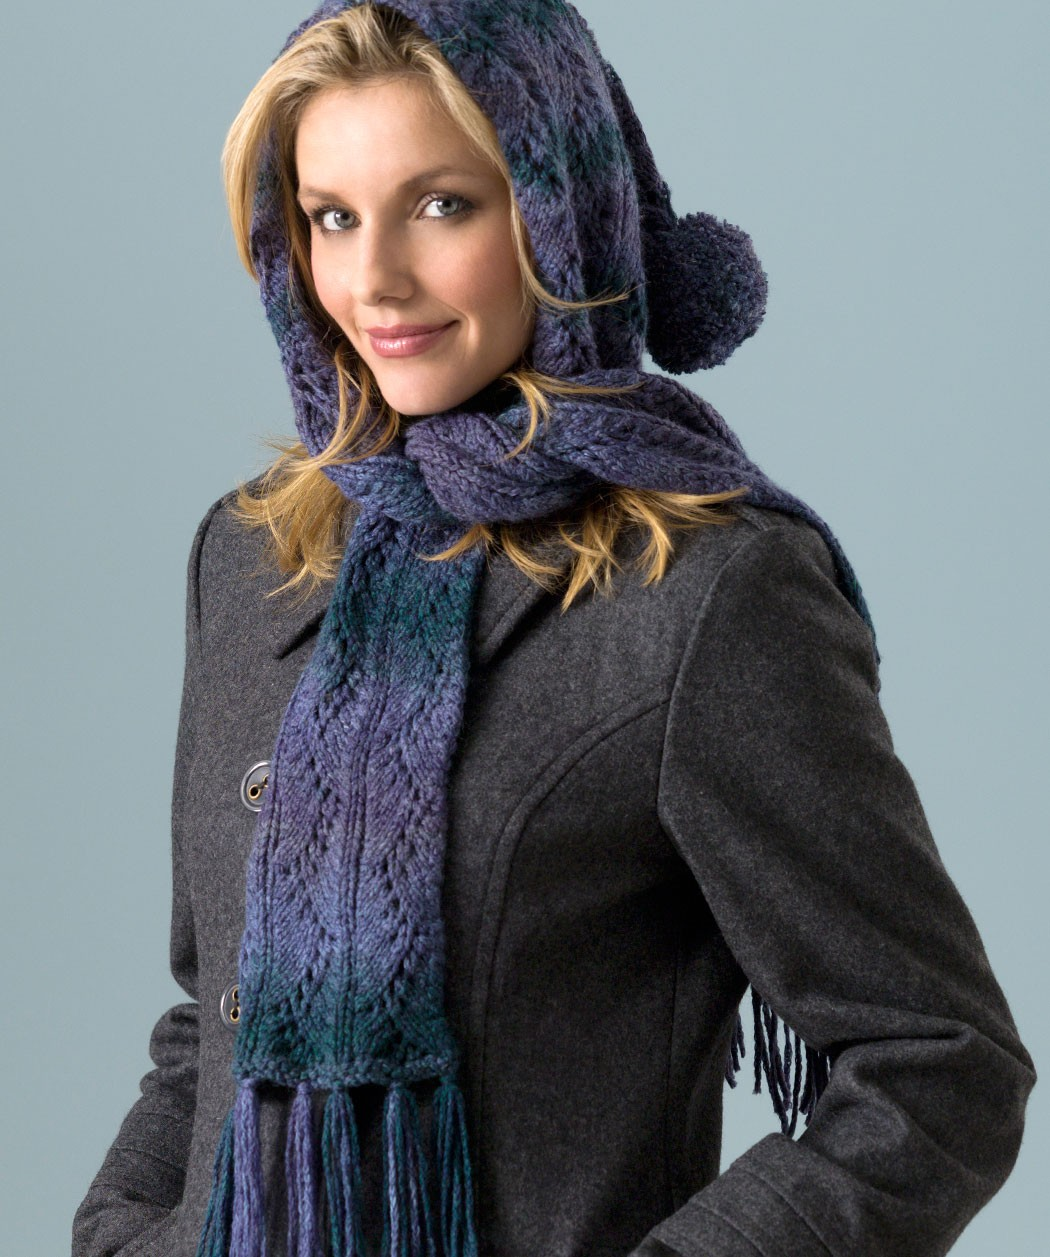 Hooded Scarf Knitting Pattern A Knitting Blog